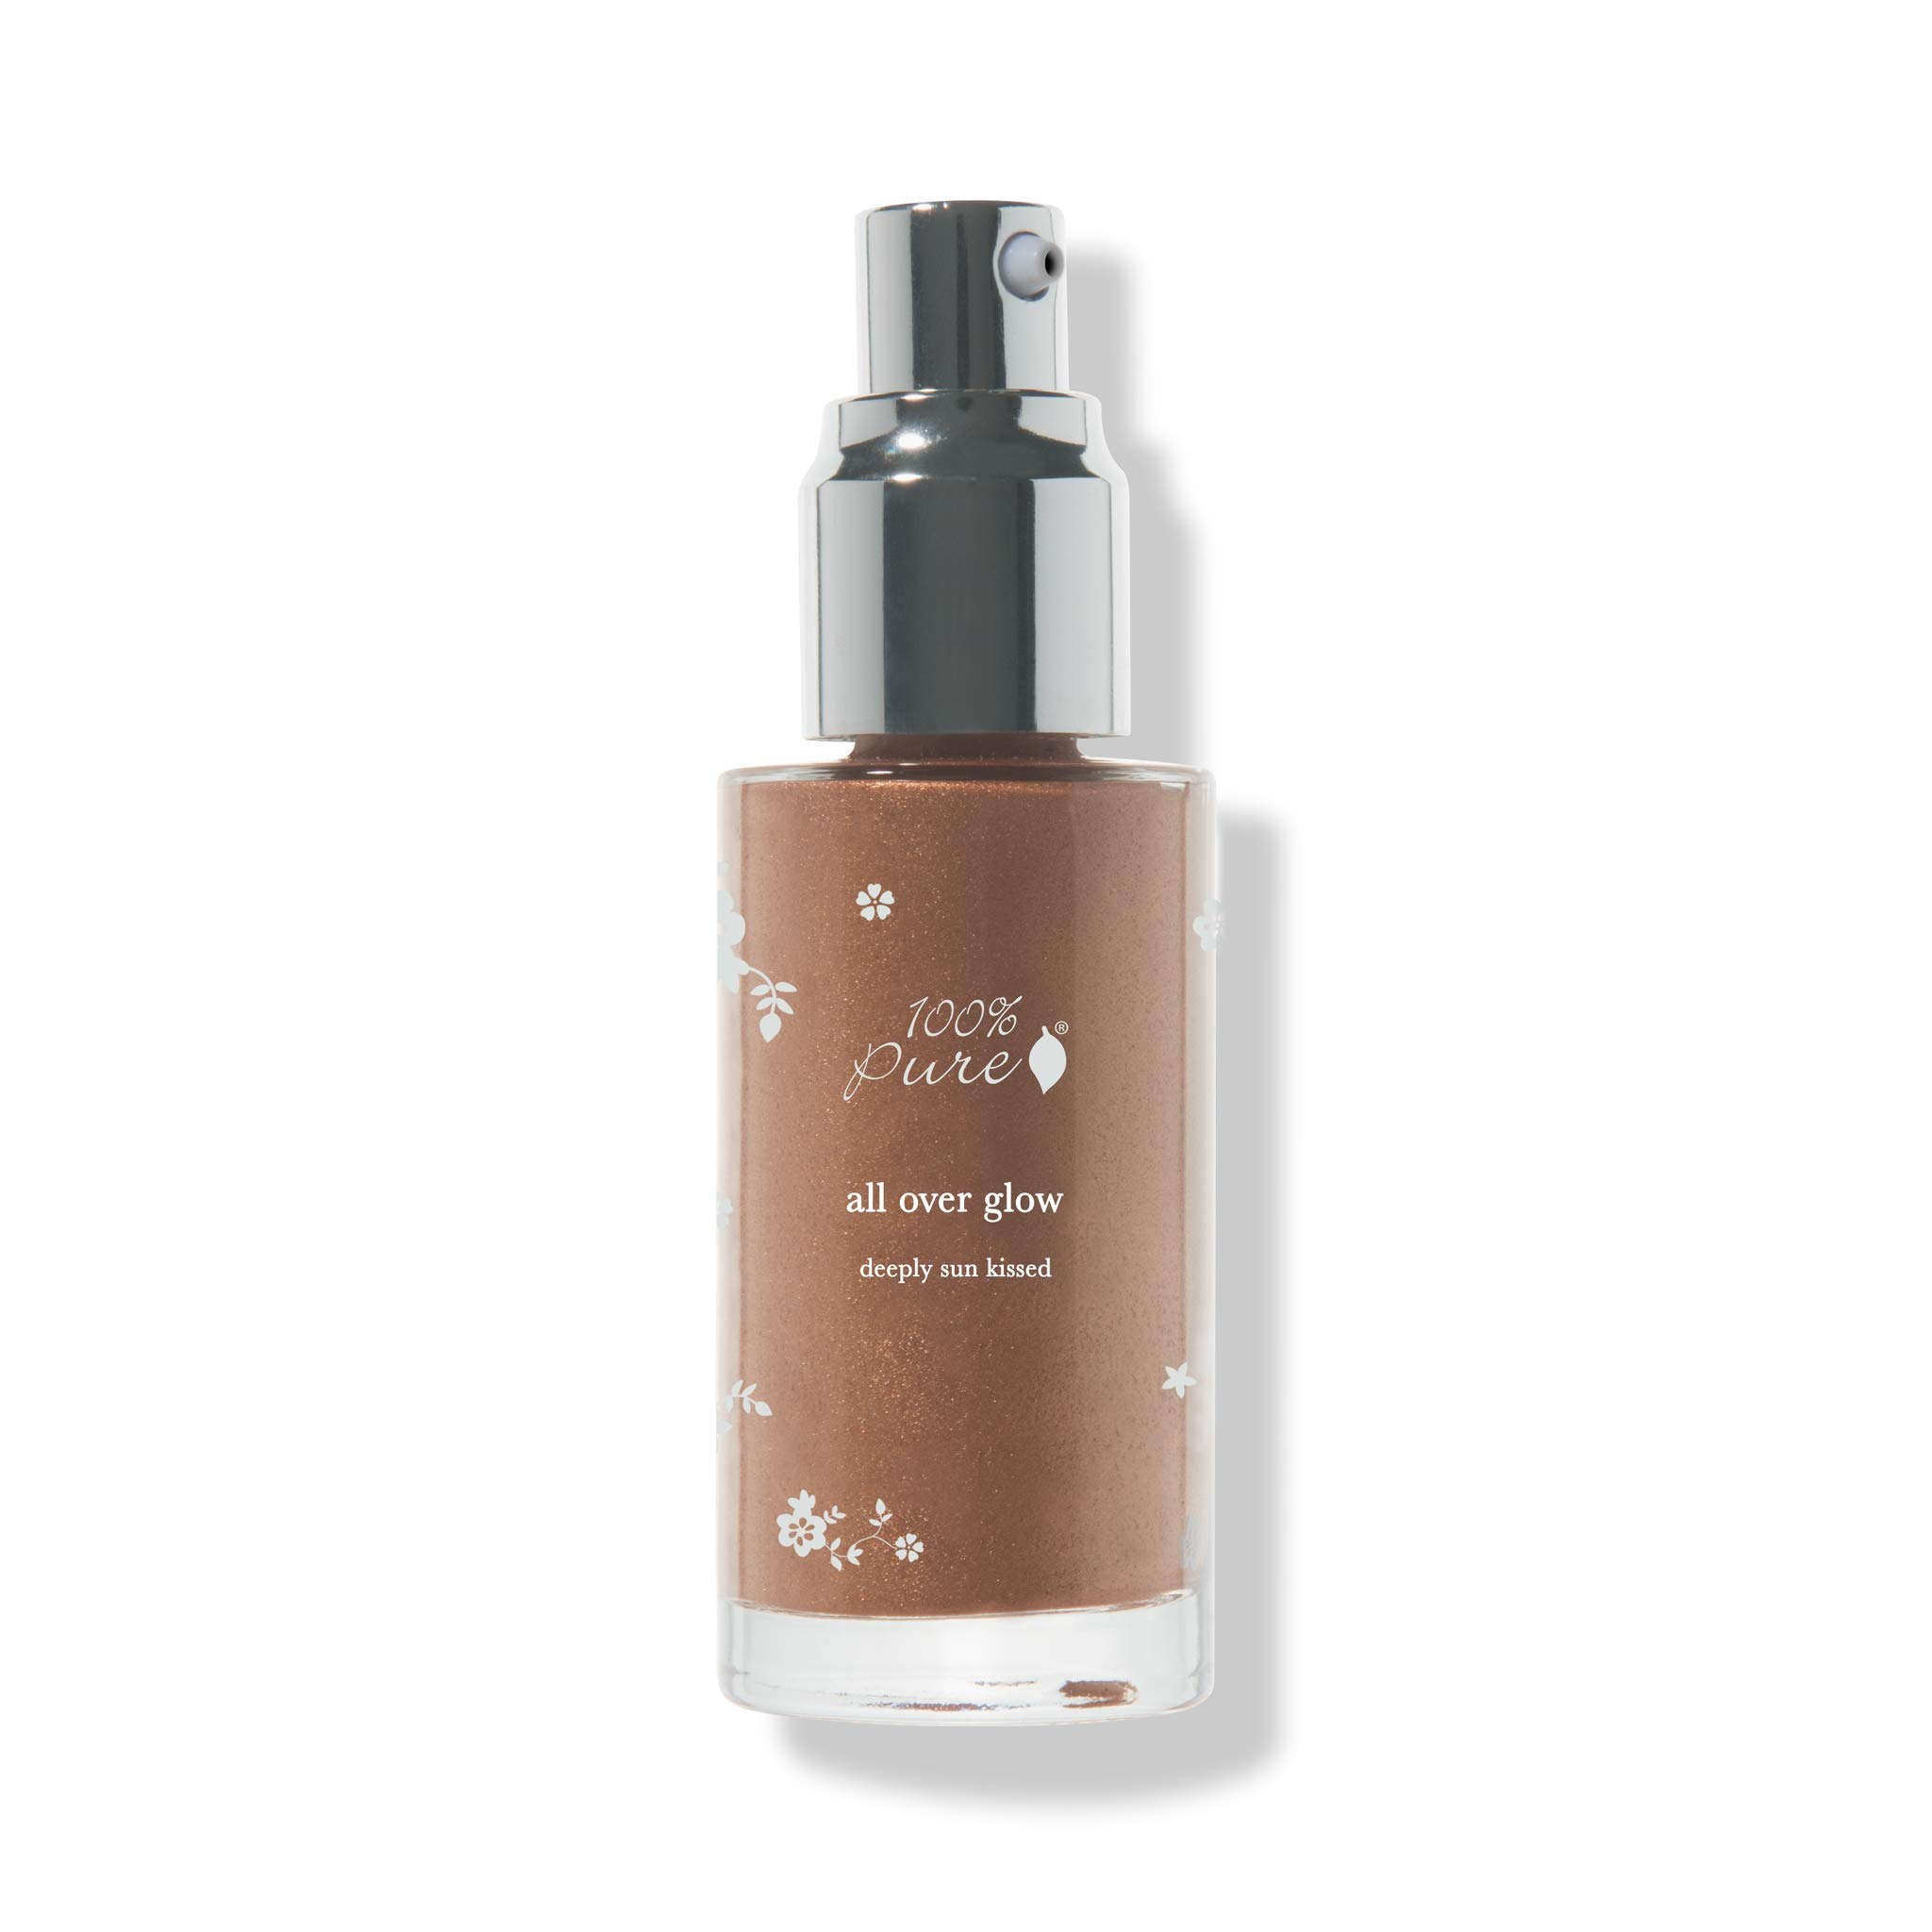 100% PURE All Over Glow Bronzer, Deeply Sunkissed, Liquid Bronzer for Glowing Skin, Contour Makeup, Illuminating Makeup for Face and Body (For Medium-Deep Toned Skin) - 1.35 Fl Oz by 100% PURE (Image #1)